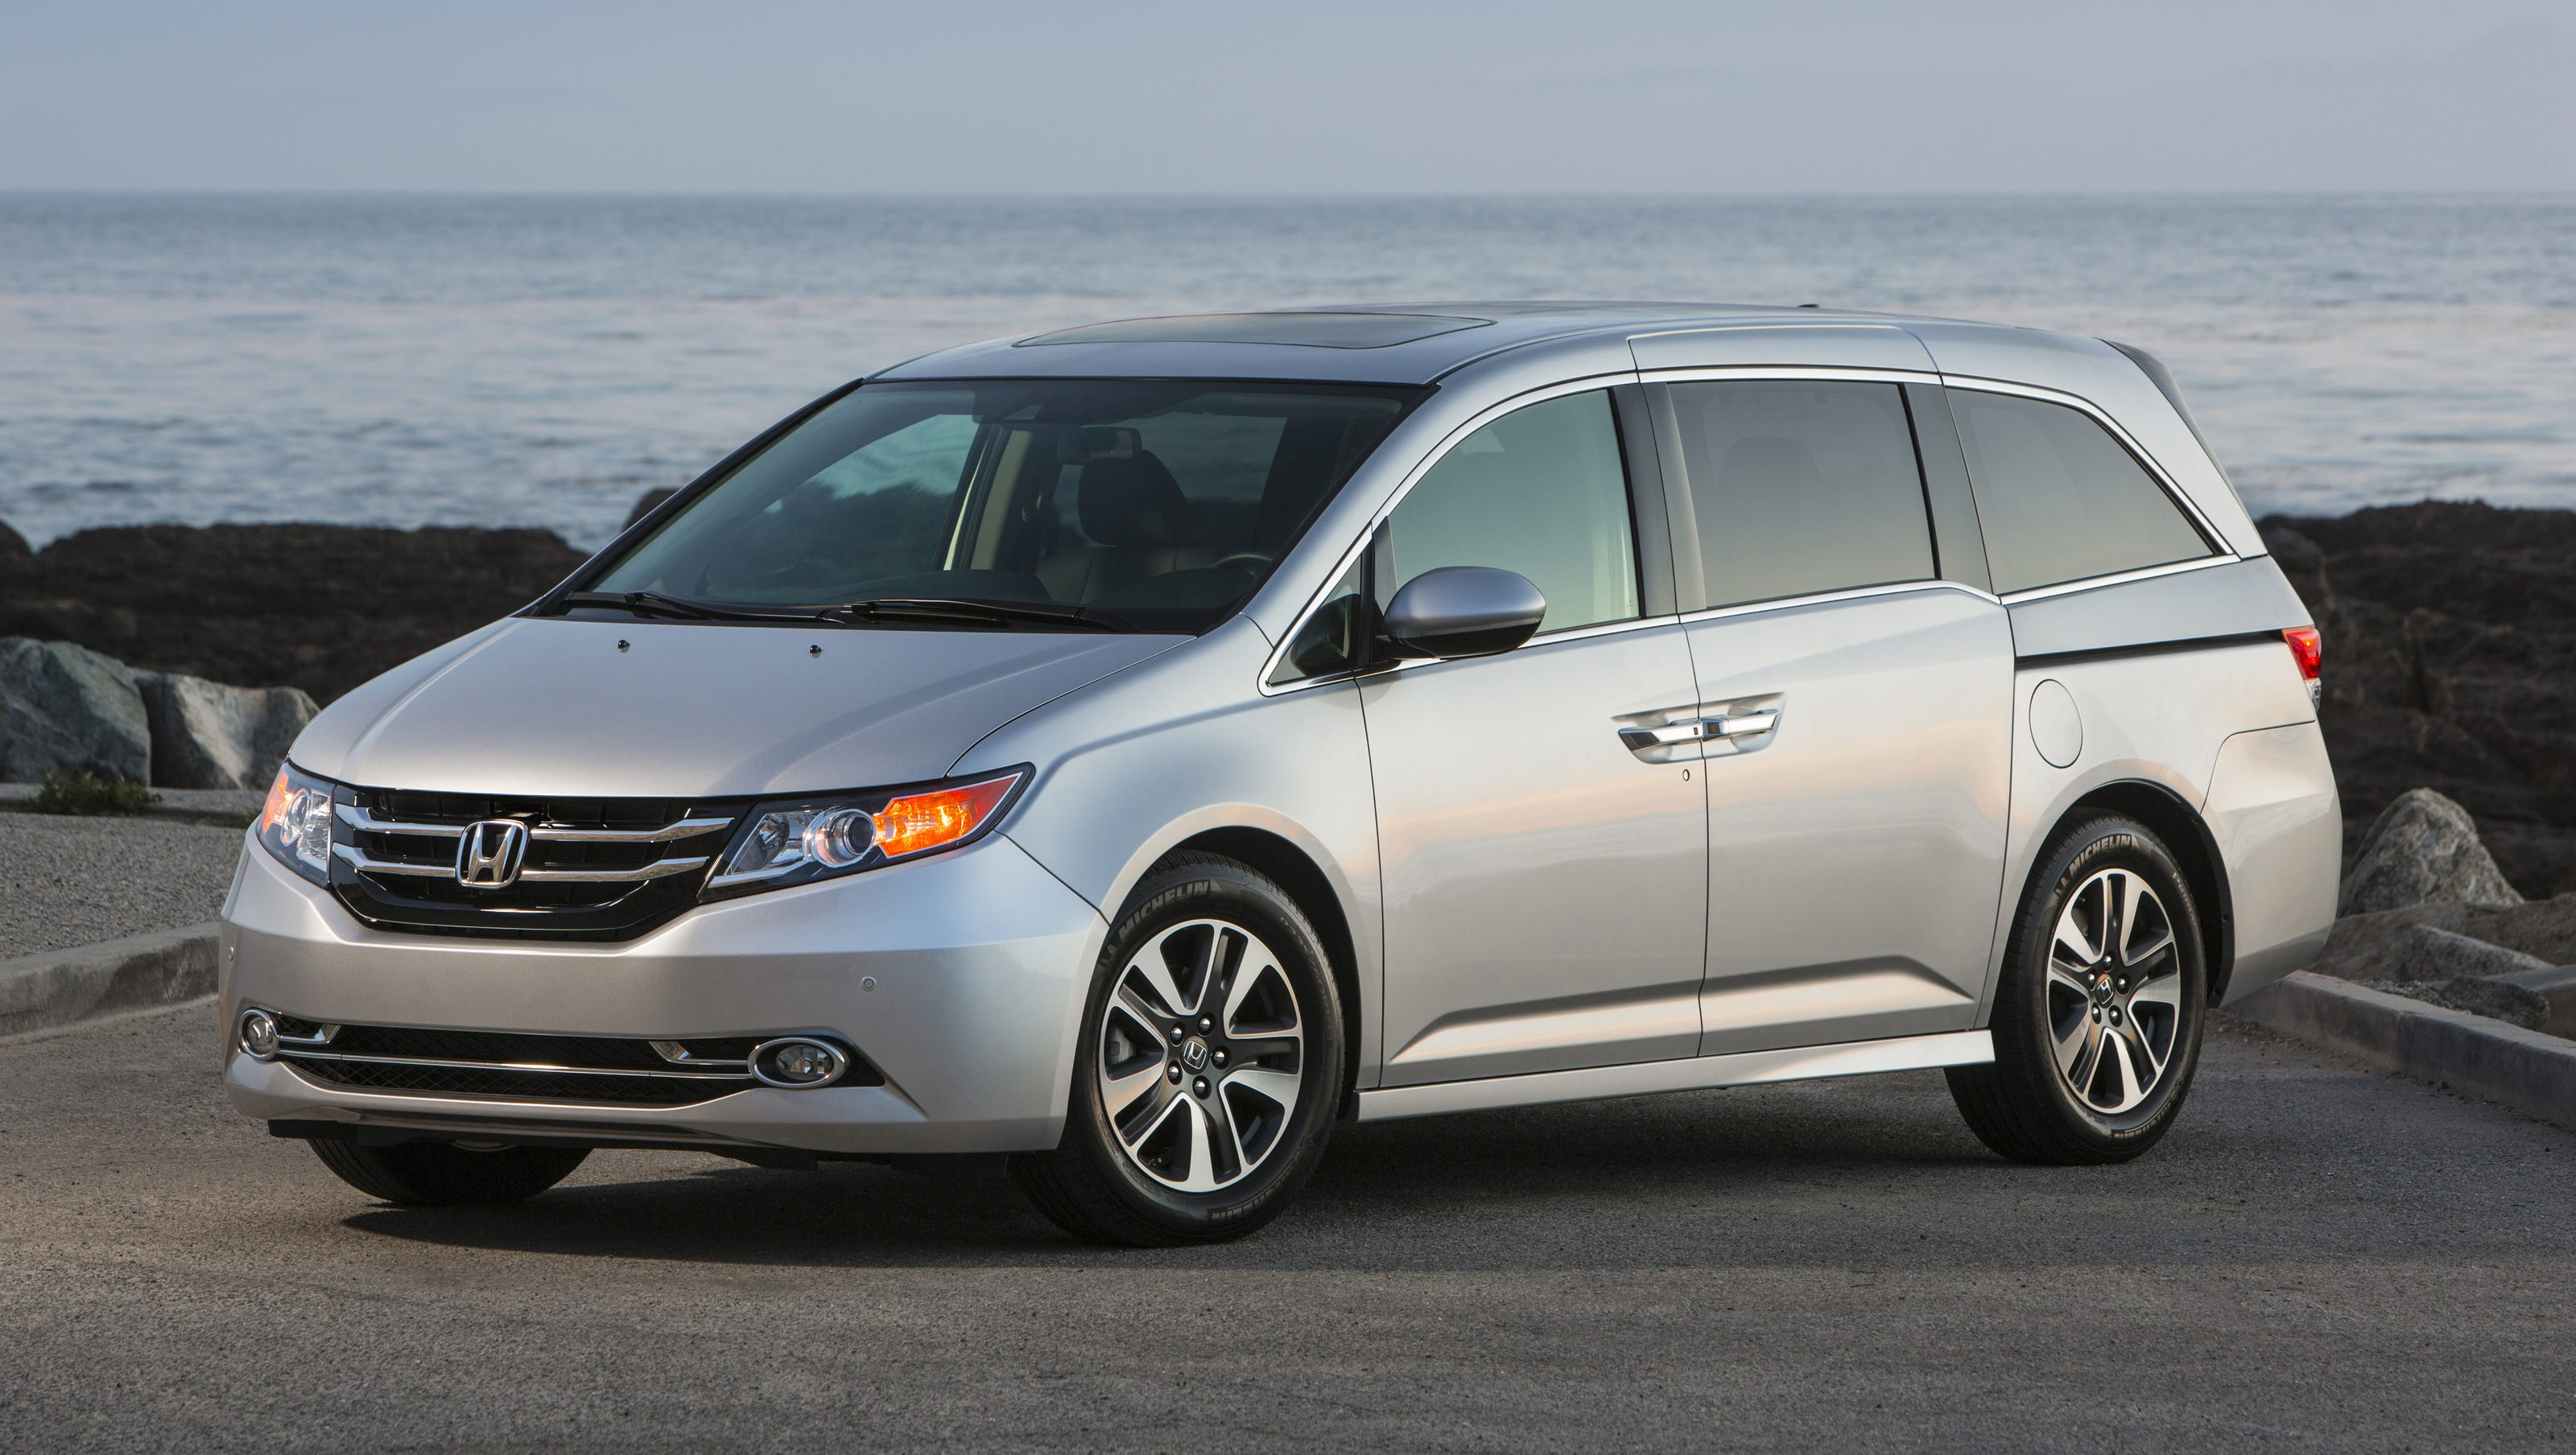 Honda Odyssey Recalled To Fix Seats That Could Shift Suddenly